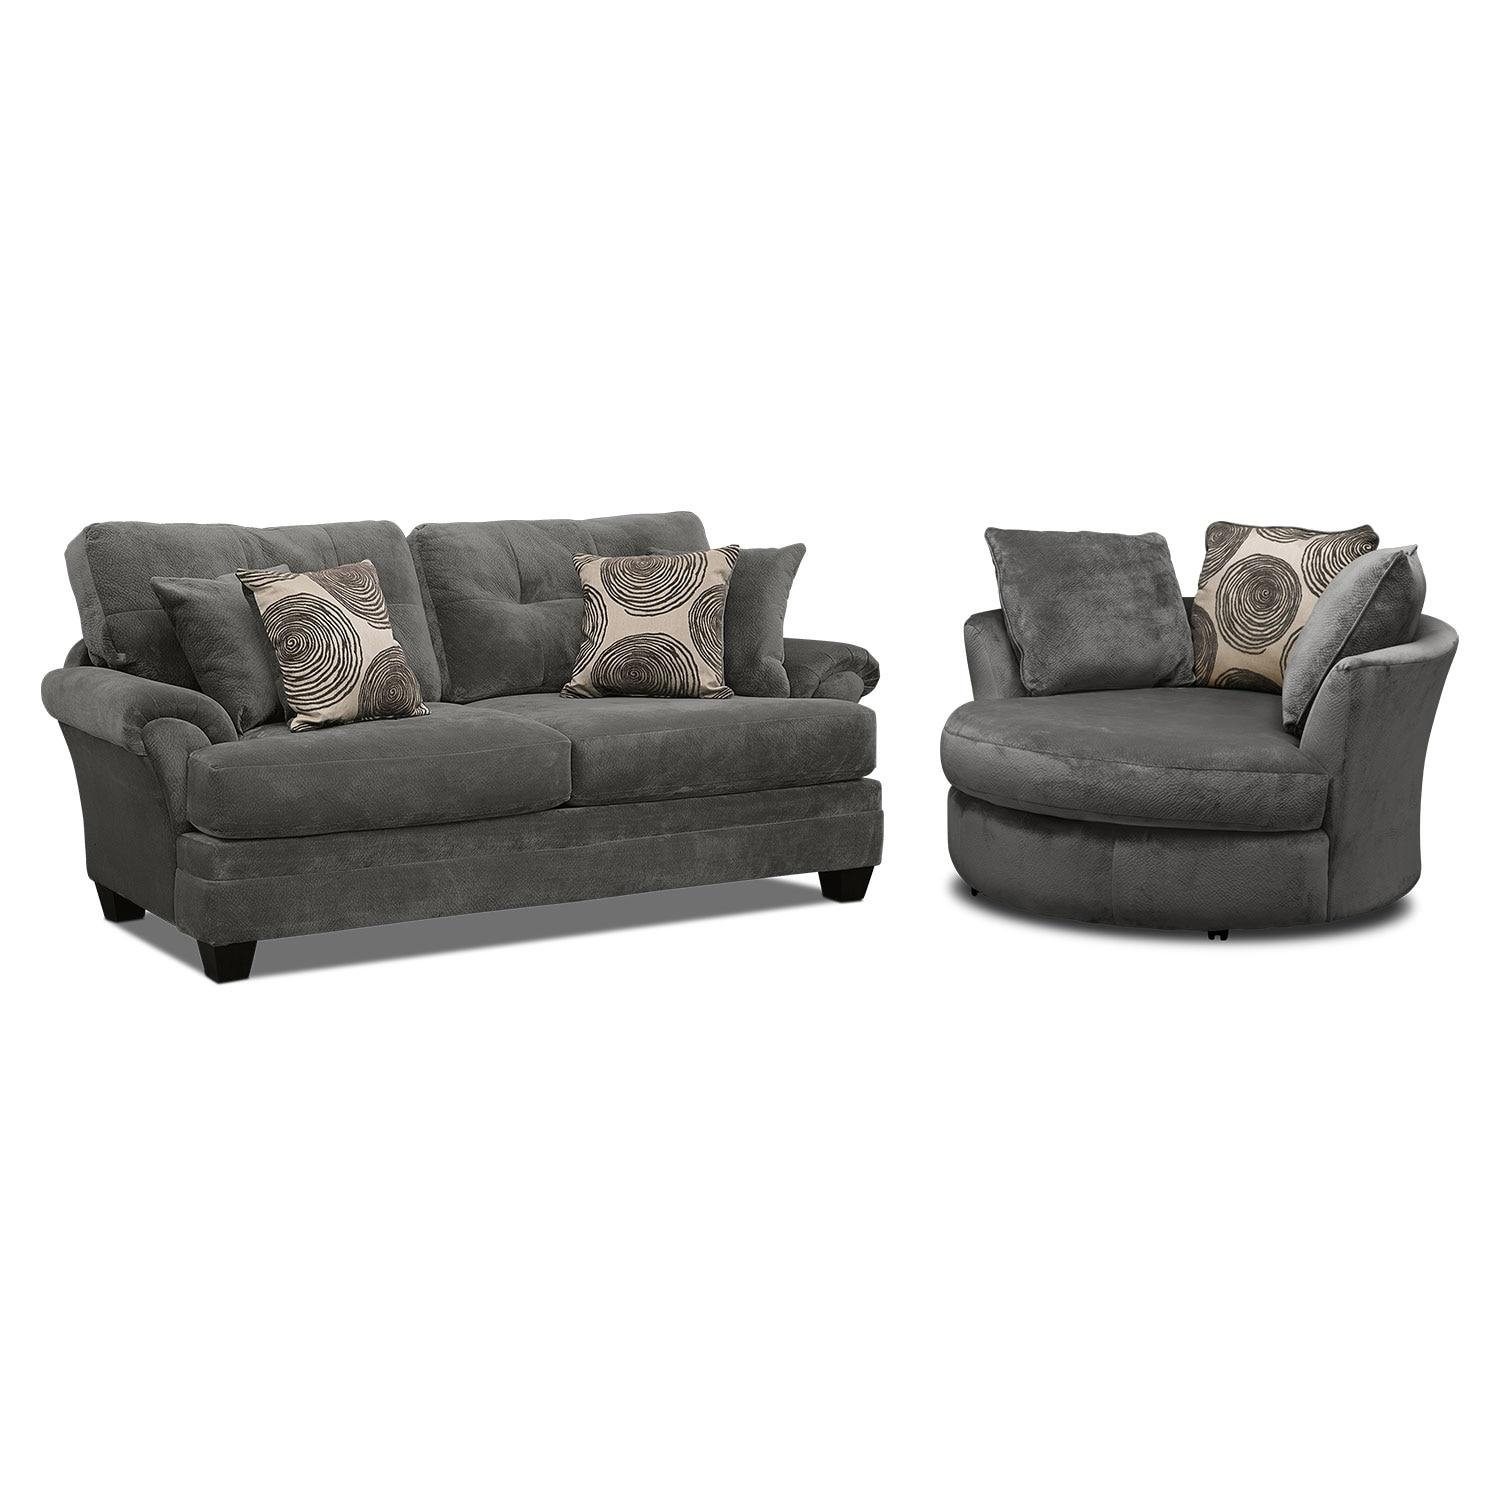 Cordelle Sofa, Loveseat And Swivel Chair Set – Gray | Value City For Swivel Sofa Chairs (Image 1 of 20)